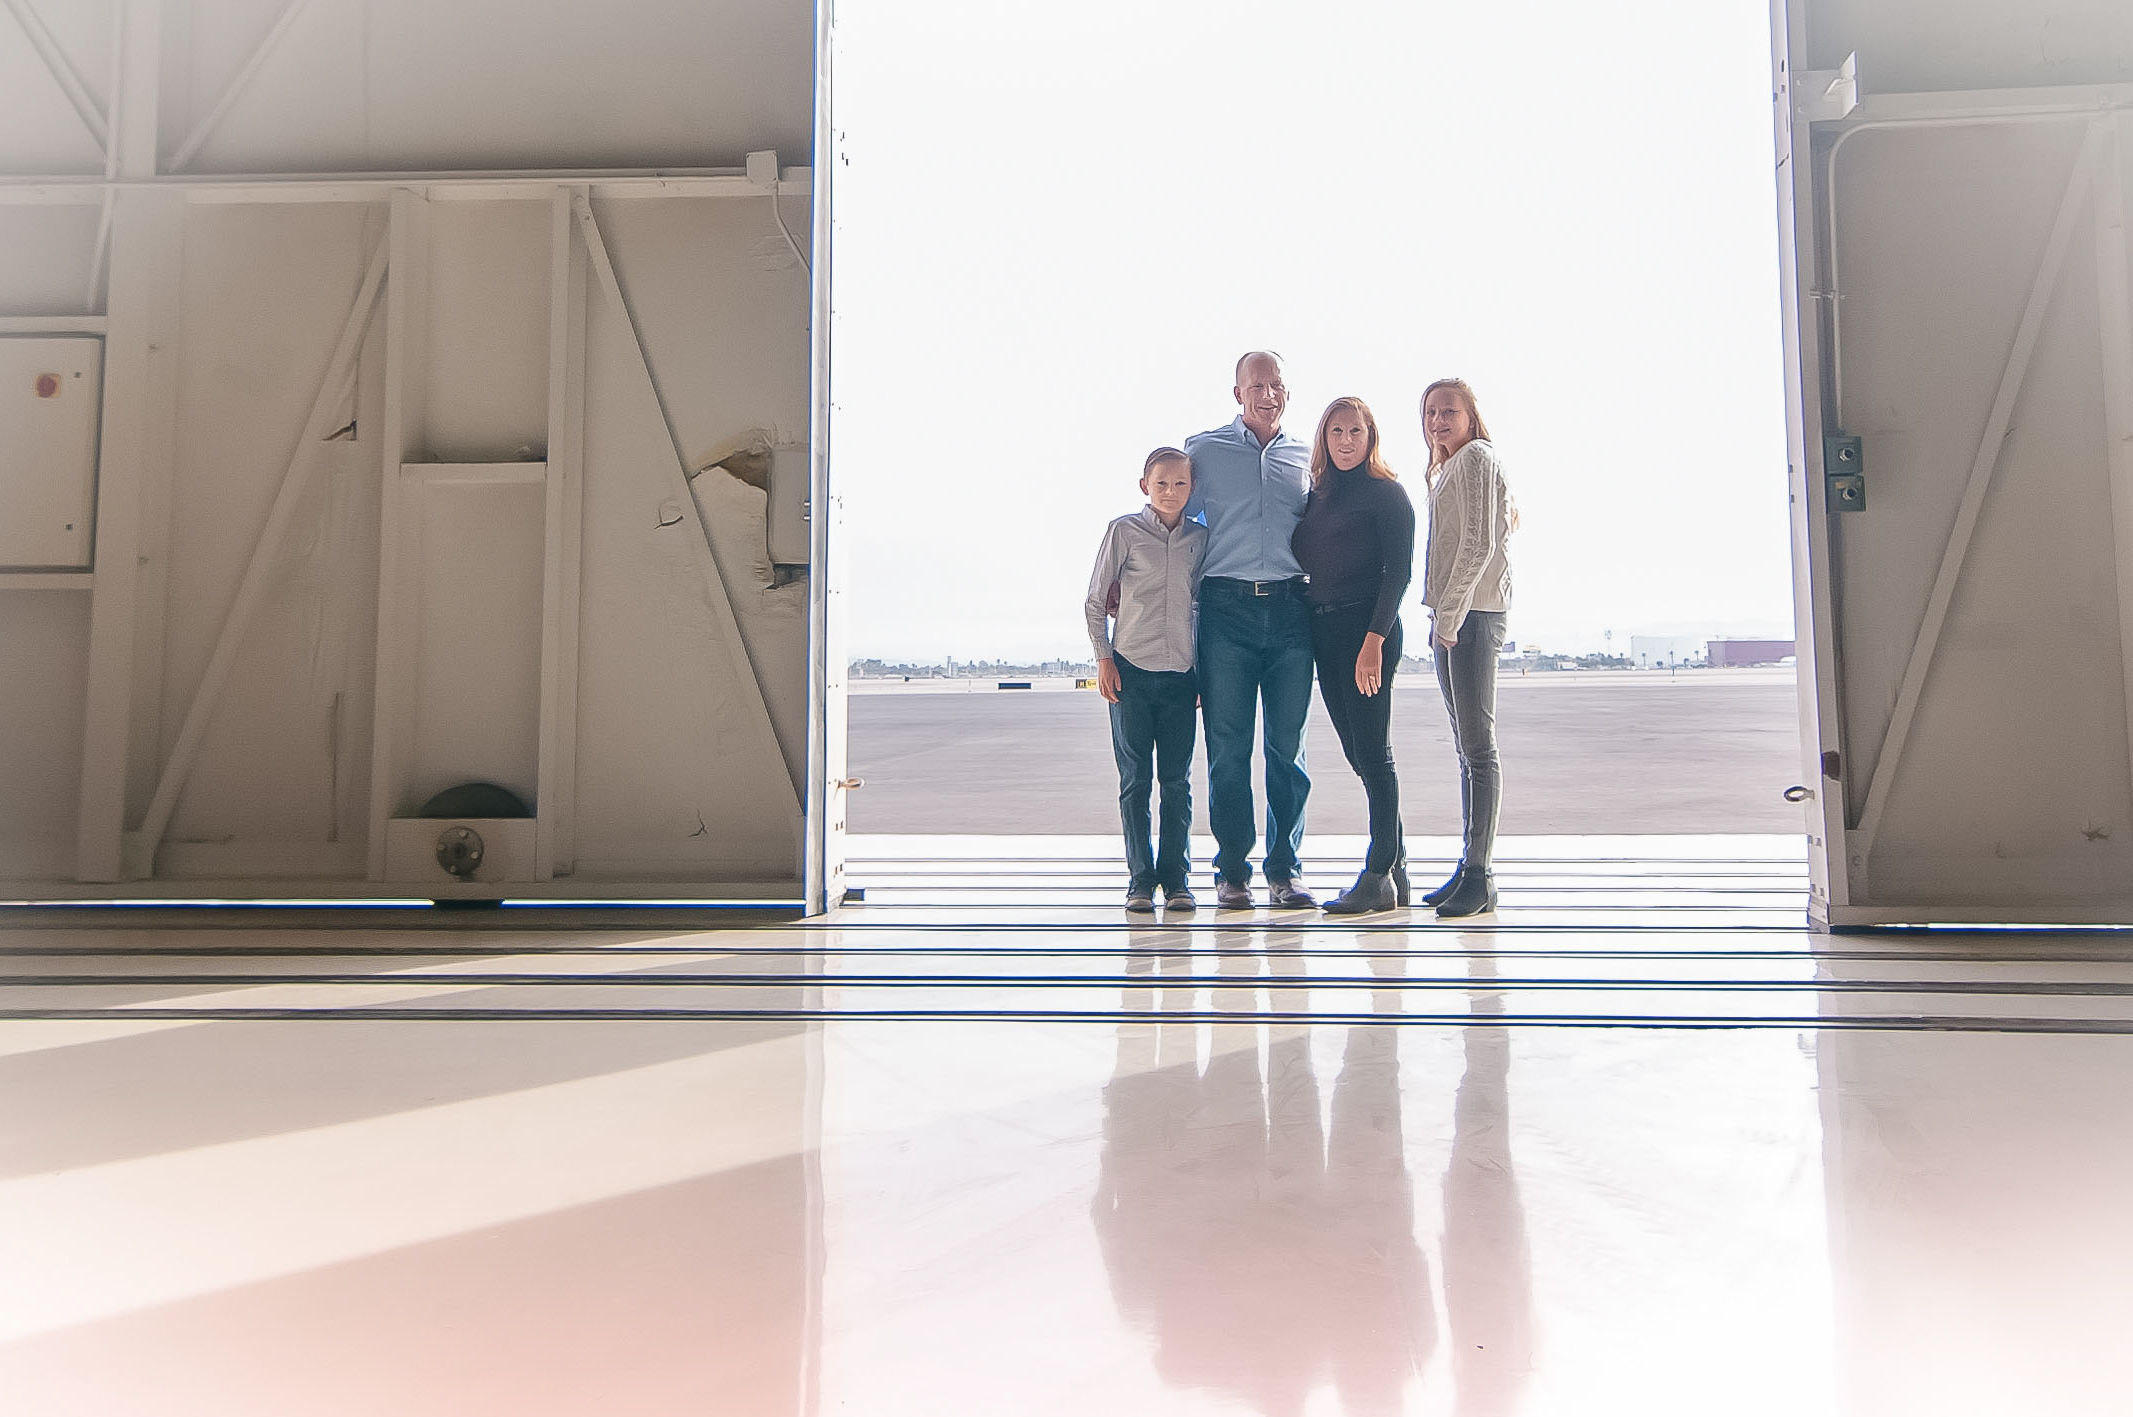 Airport Hangar Family Photography Session